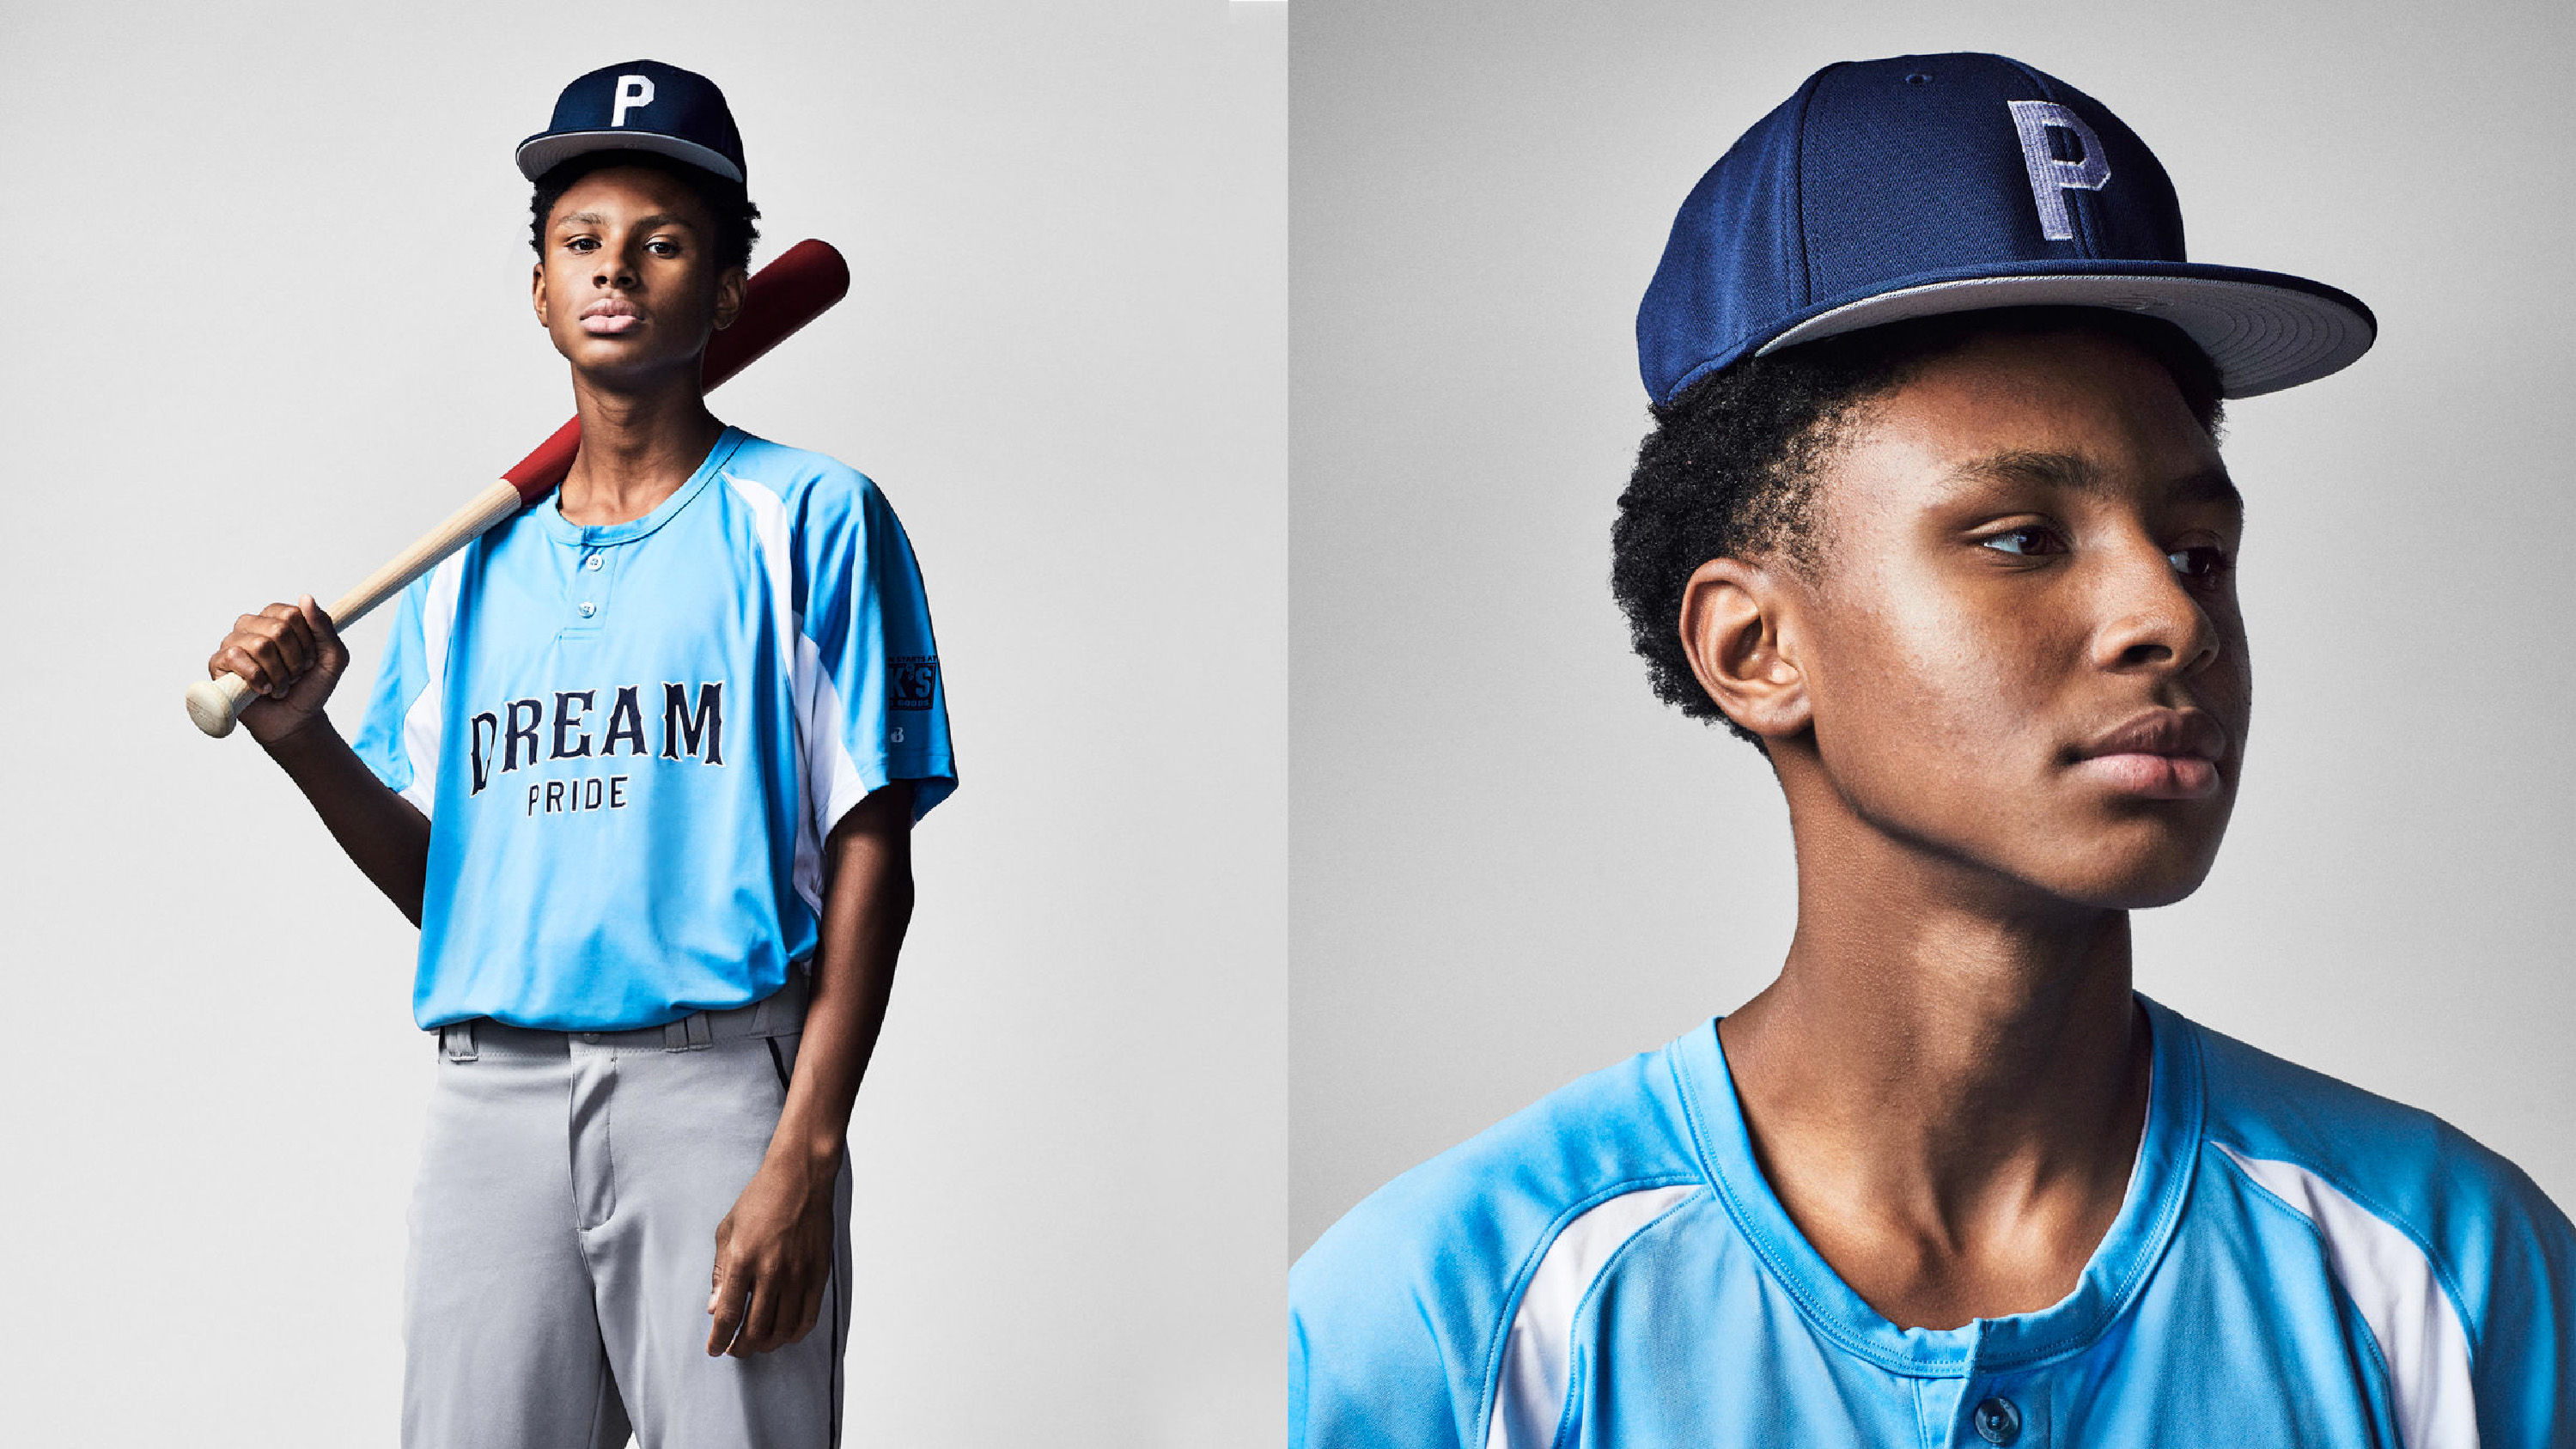 Dream Athlete Shoot